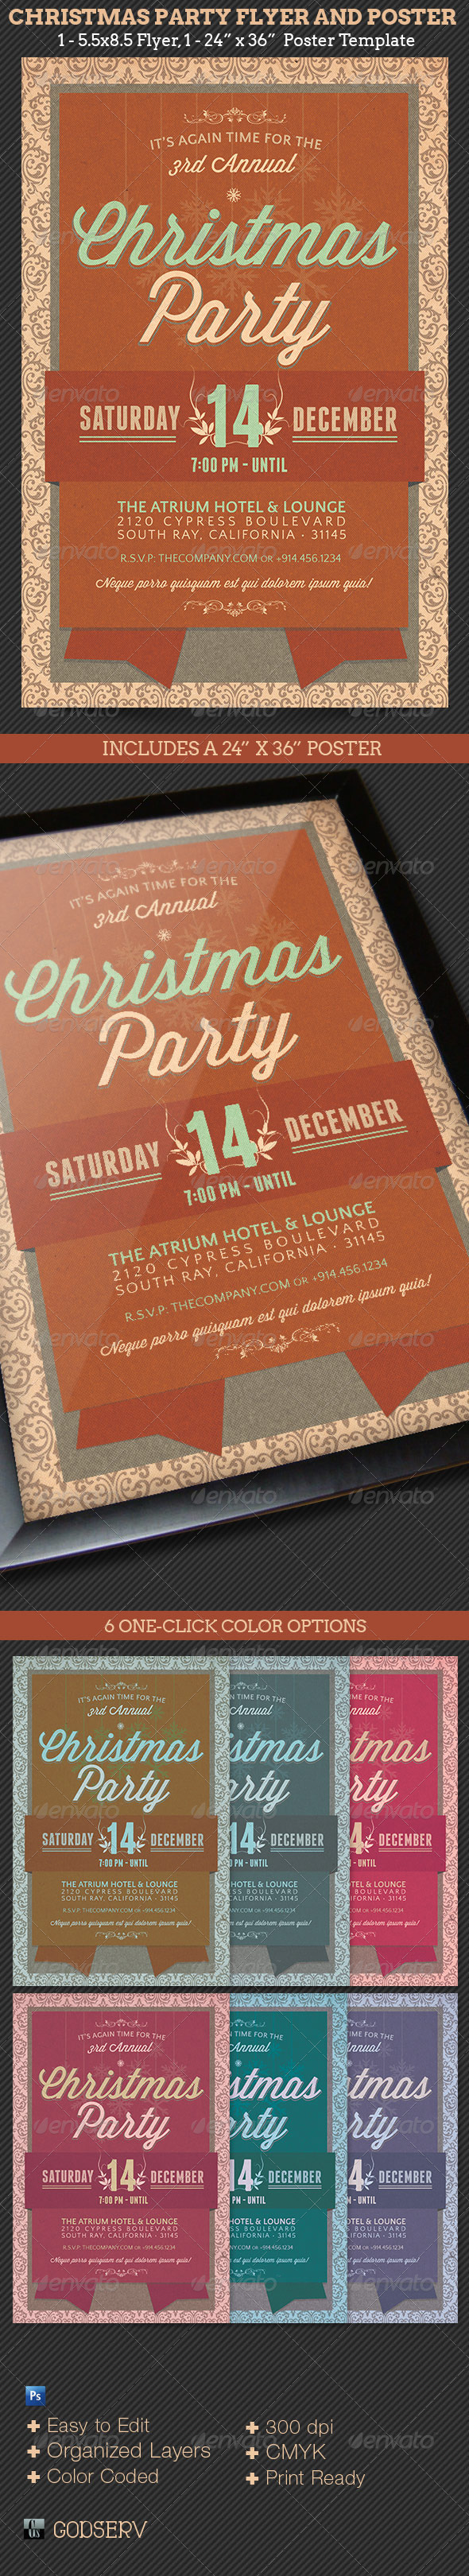 Christmas Party Flyer and Poster Template - Holidays Events